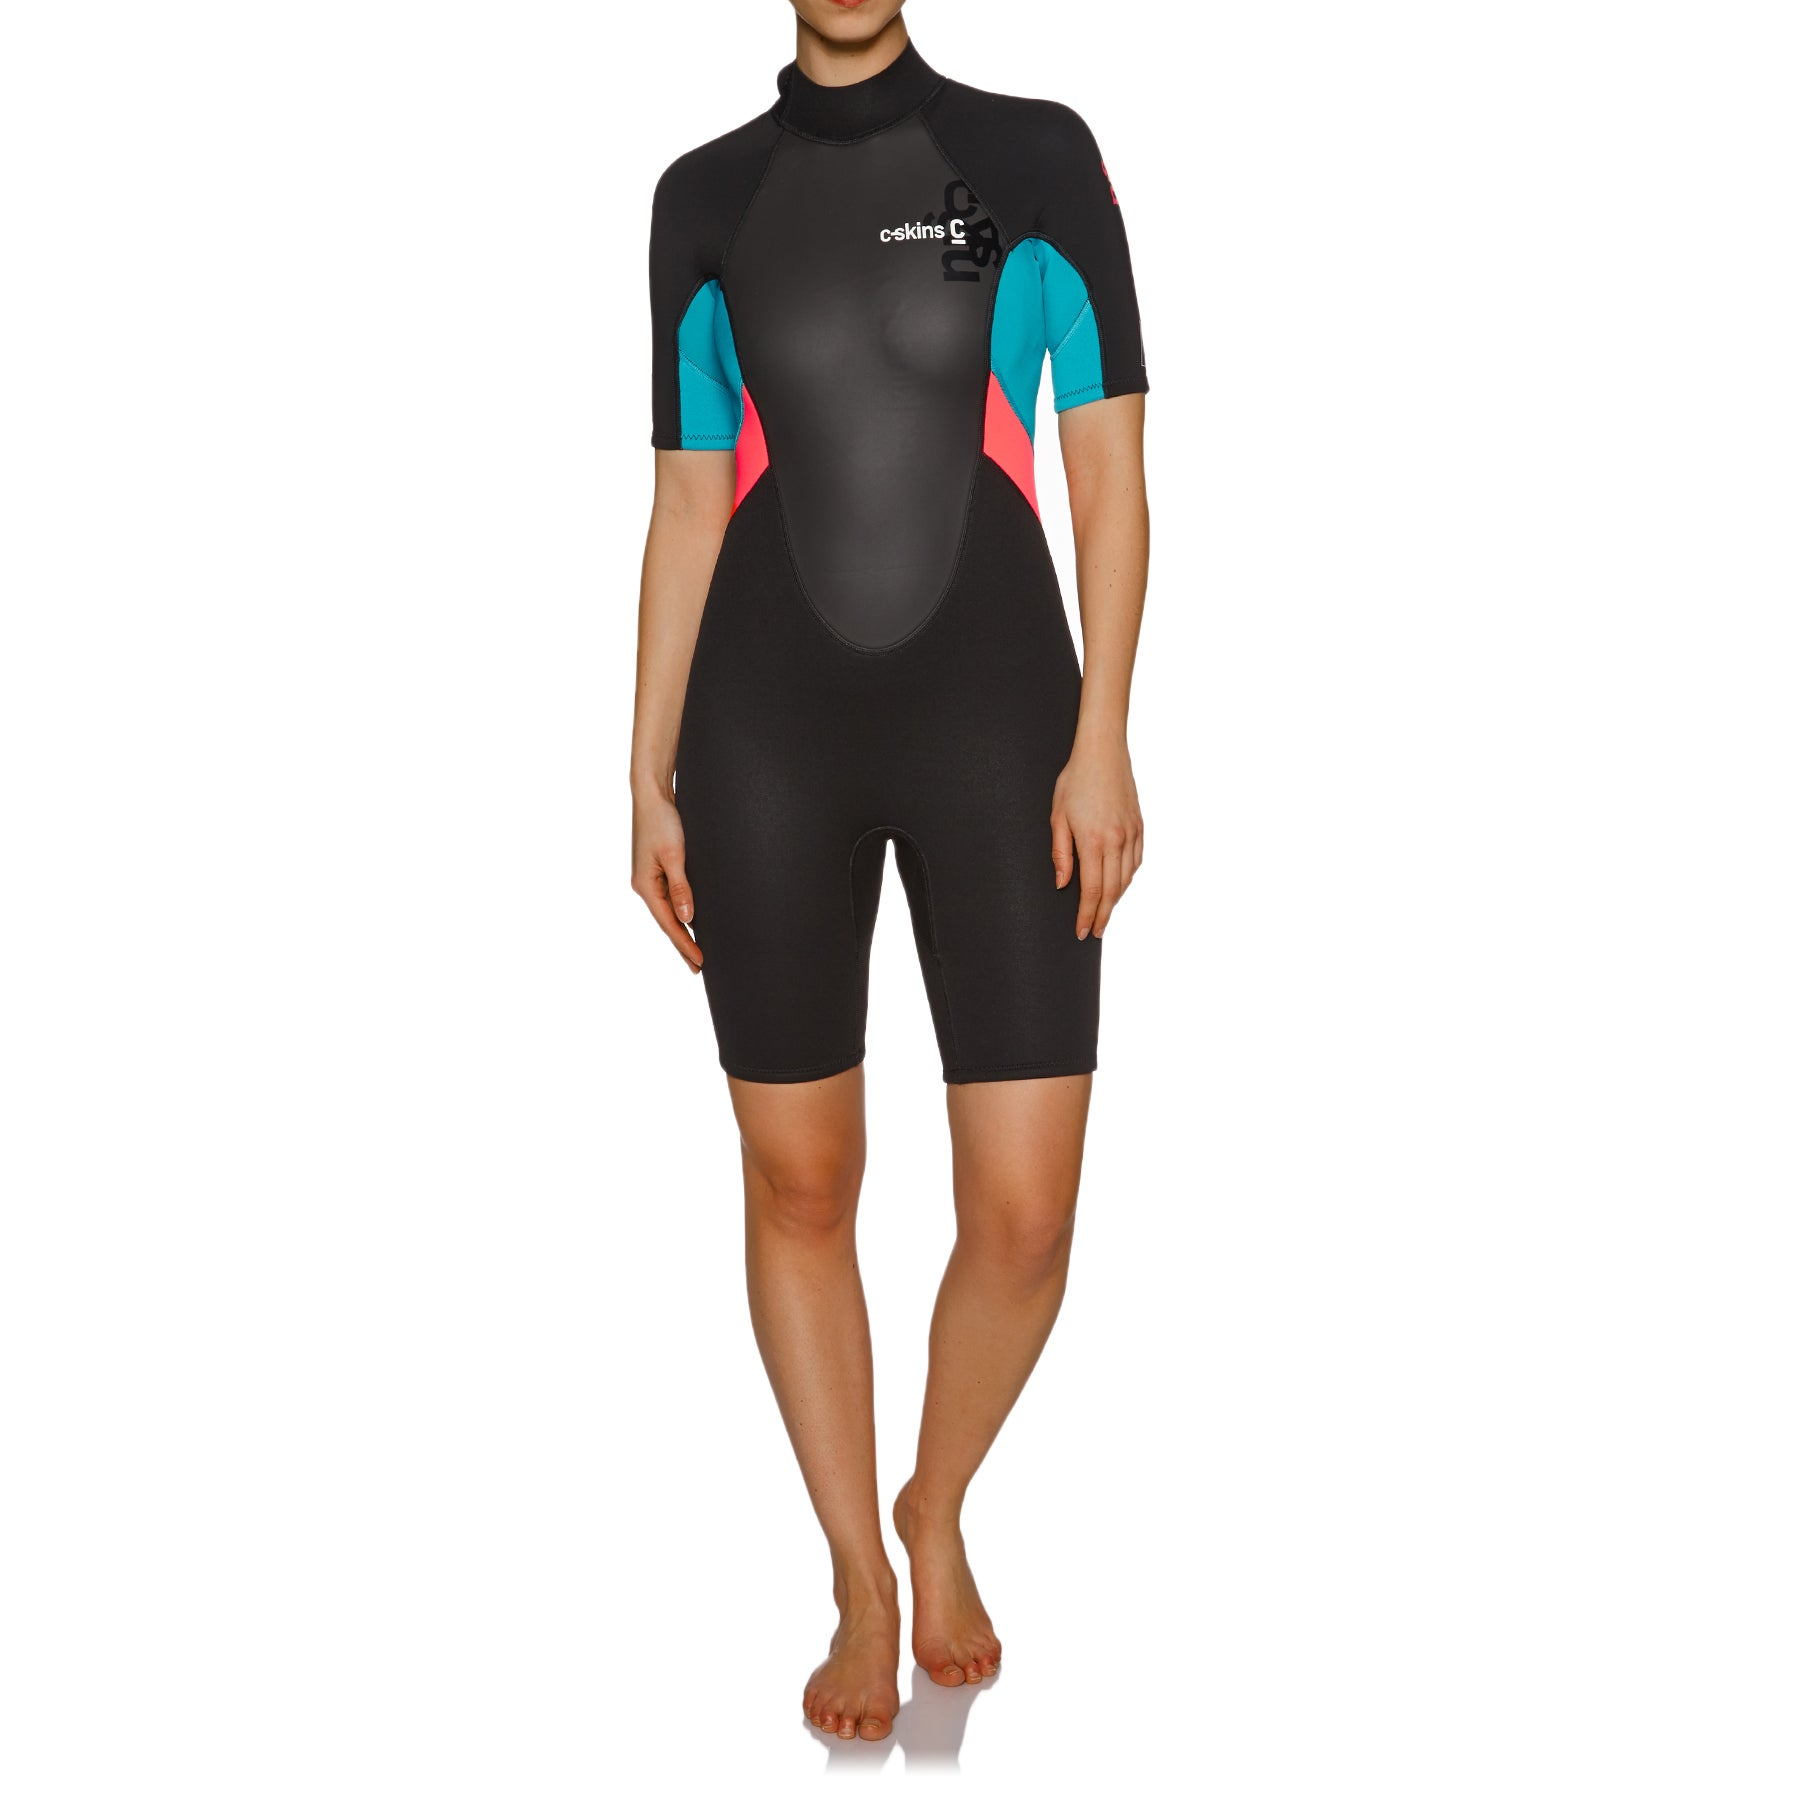 C-Skins Element 3/2mm Back Zip Shorty Wetsuit - Black Coral Aqua